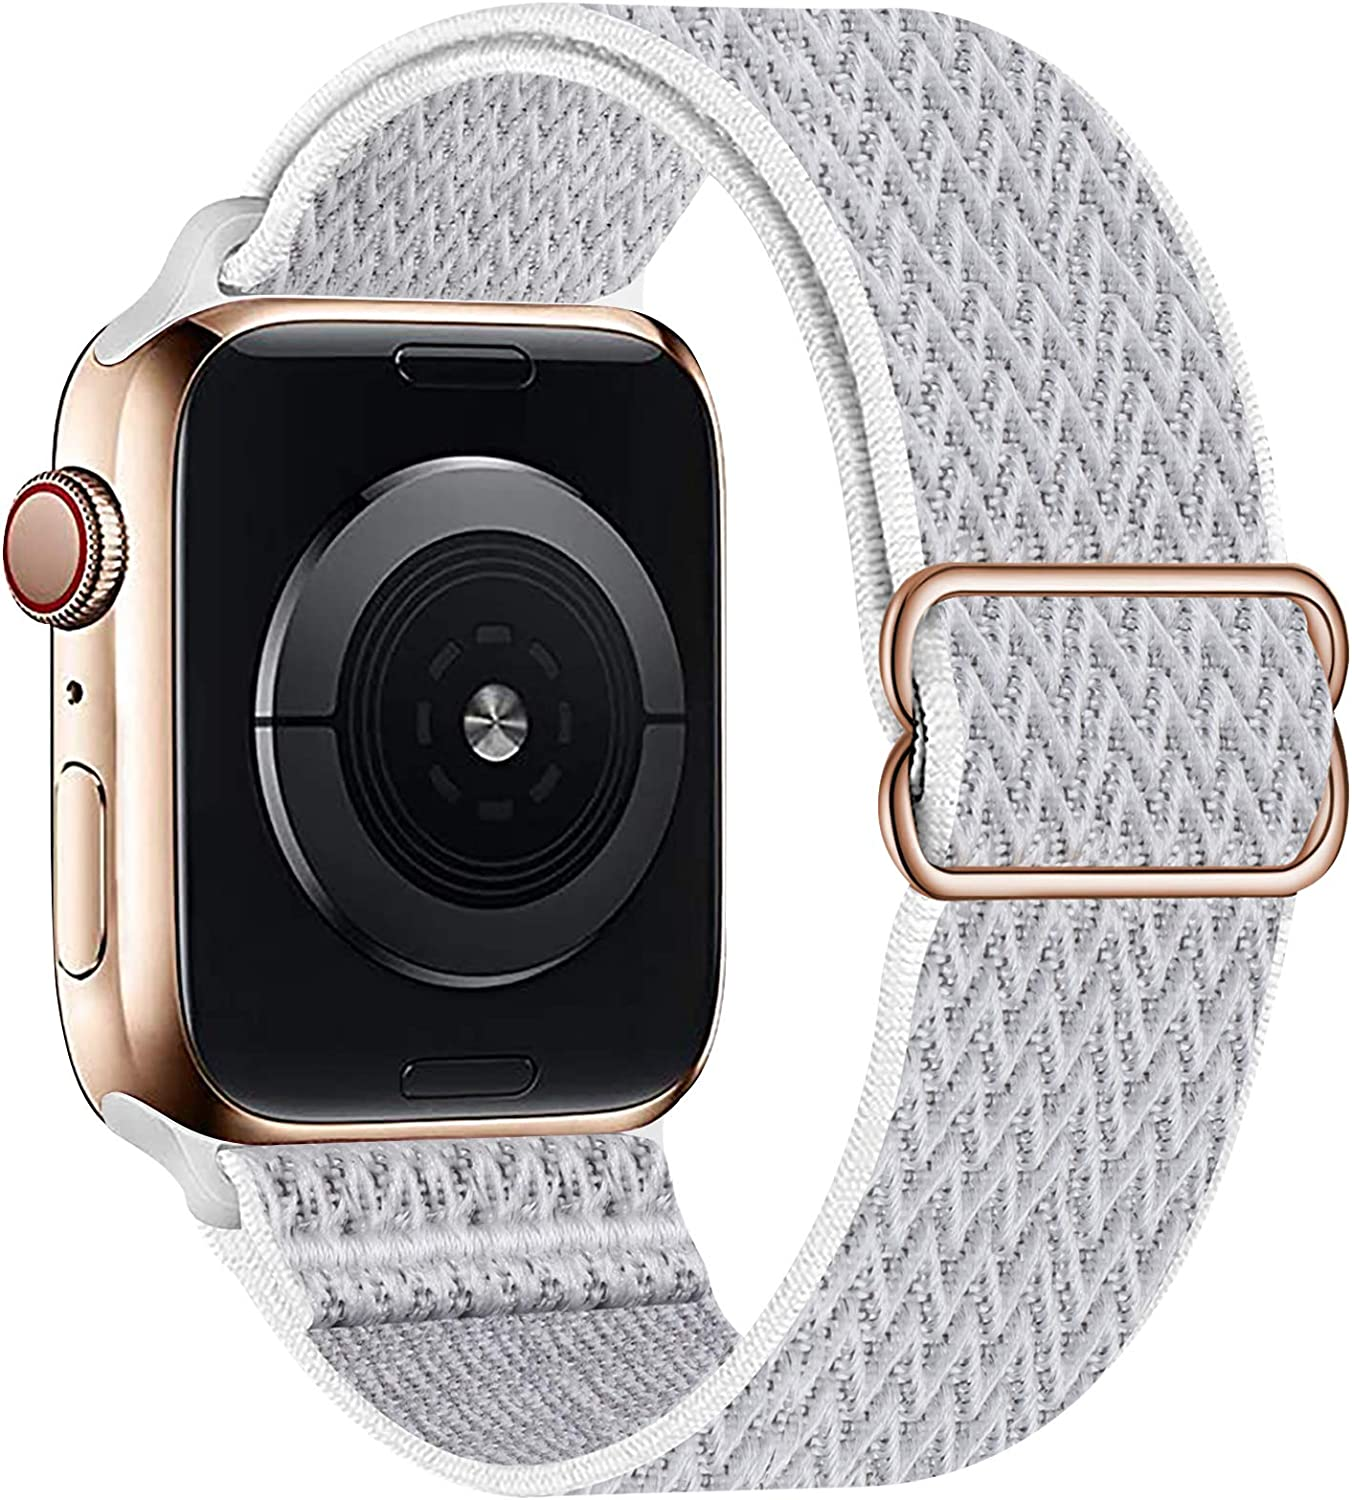 OHCBOOGIE Stretchy Solo Loop Strap Compatible with Apple Watch Bands 42mm 44mm,Adjustable Stretch Braided Elastics Weave Nylon Women Men Wristband Compatible with iWatch Series 6/5/4/3/2/1 SE,Seashell